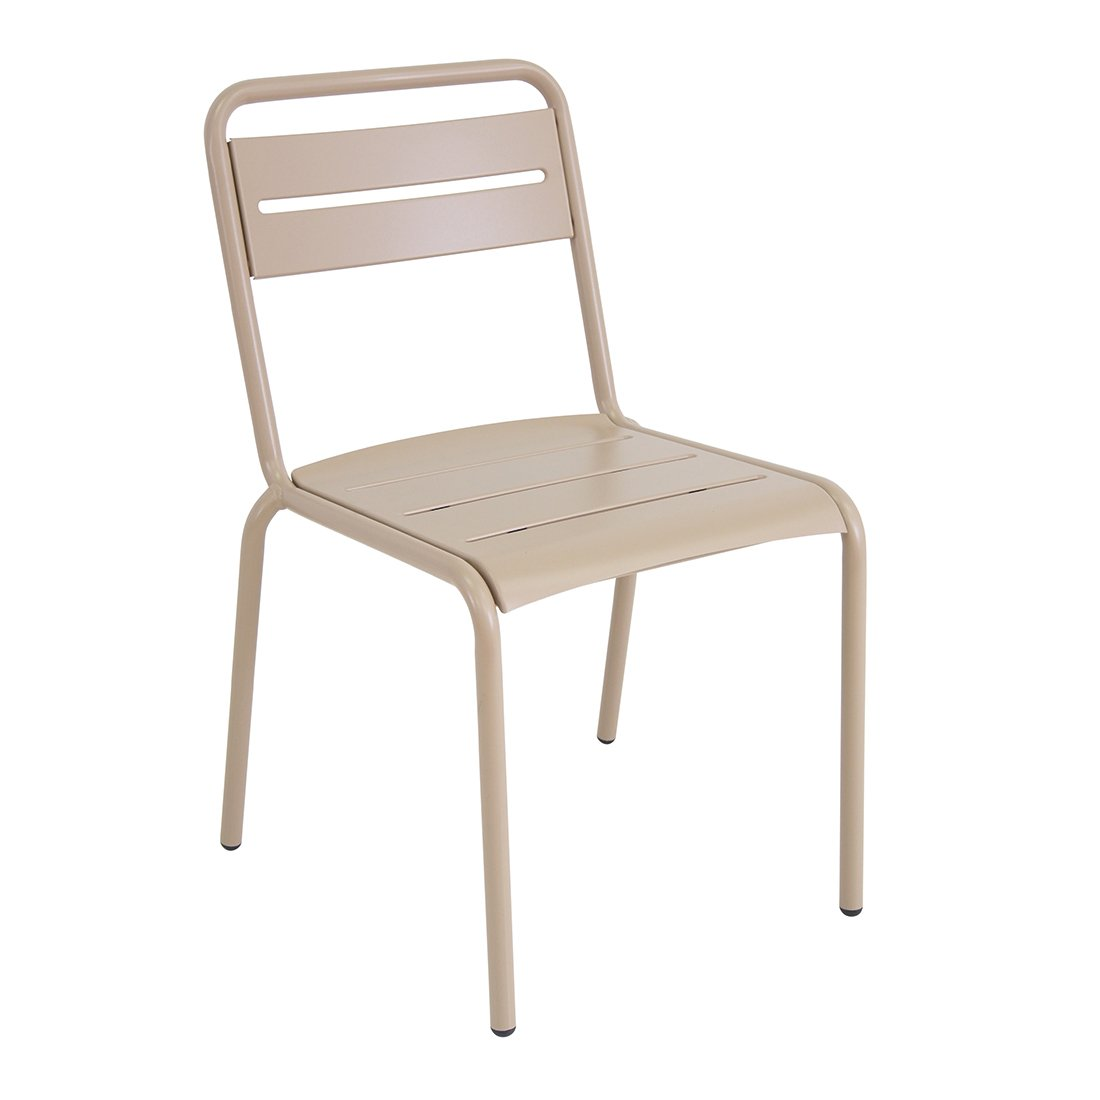 EMU Star Chair Stoel Cr�me 71